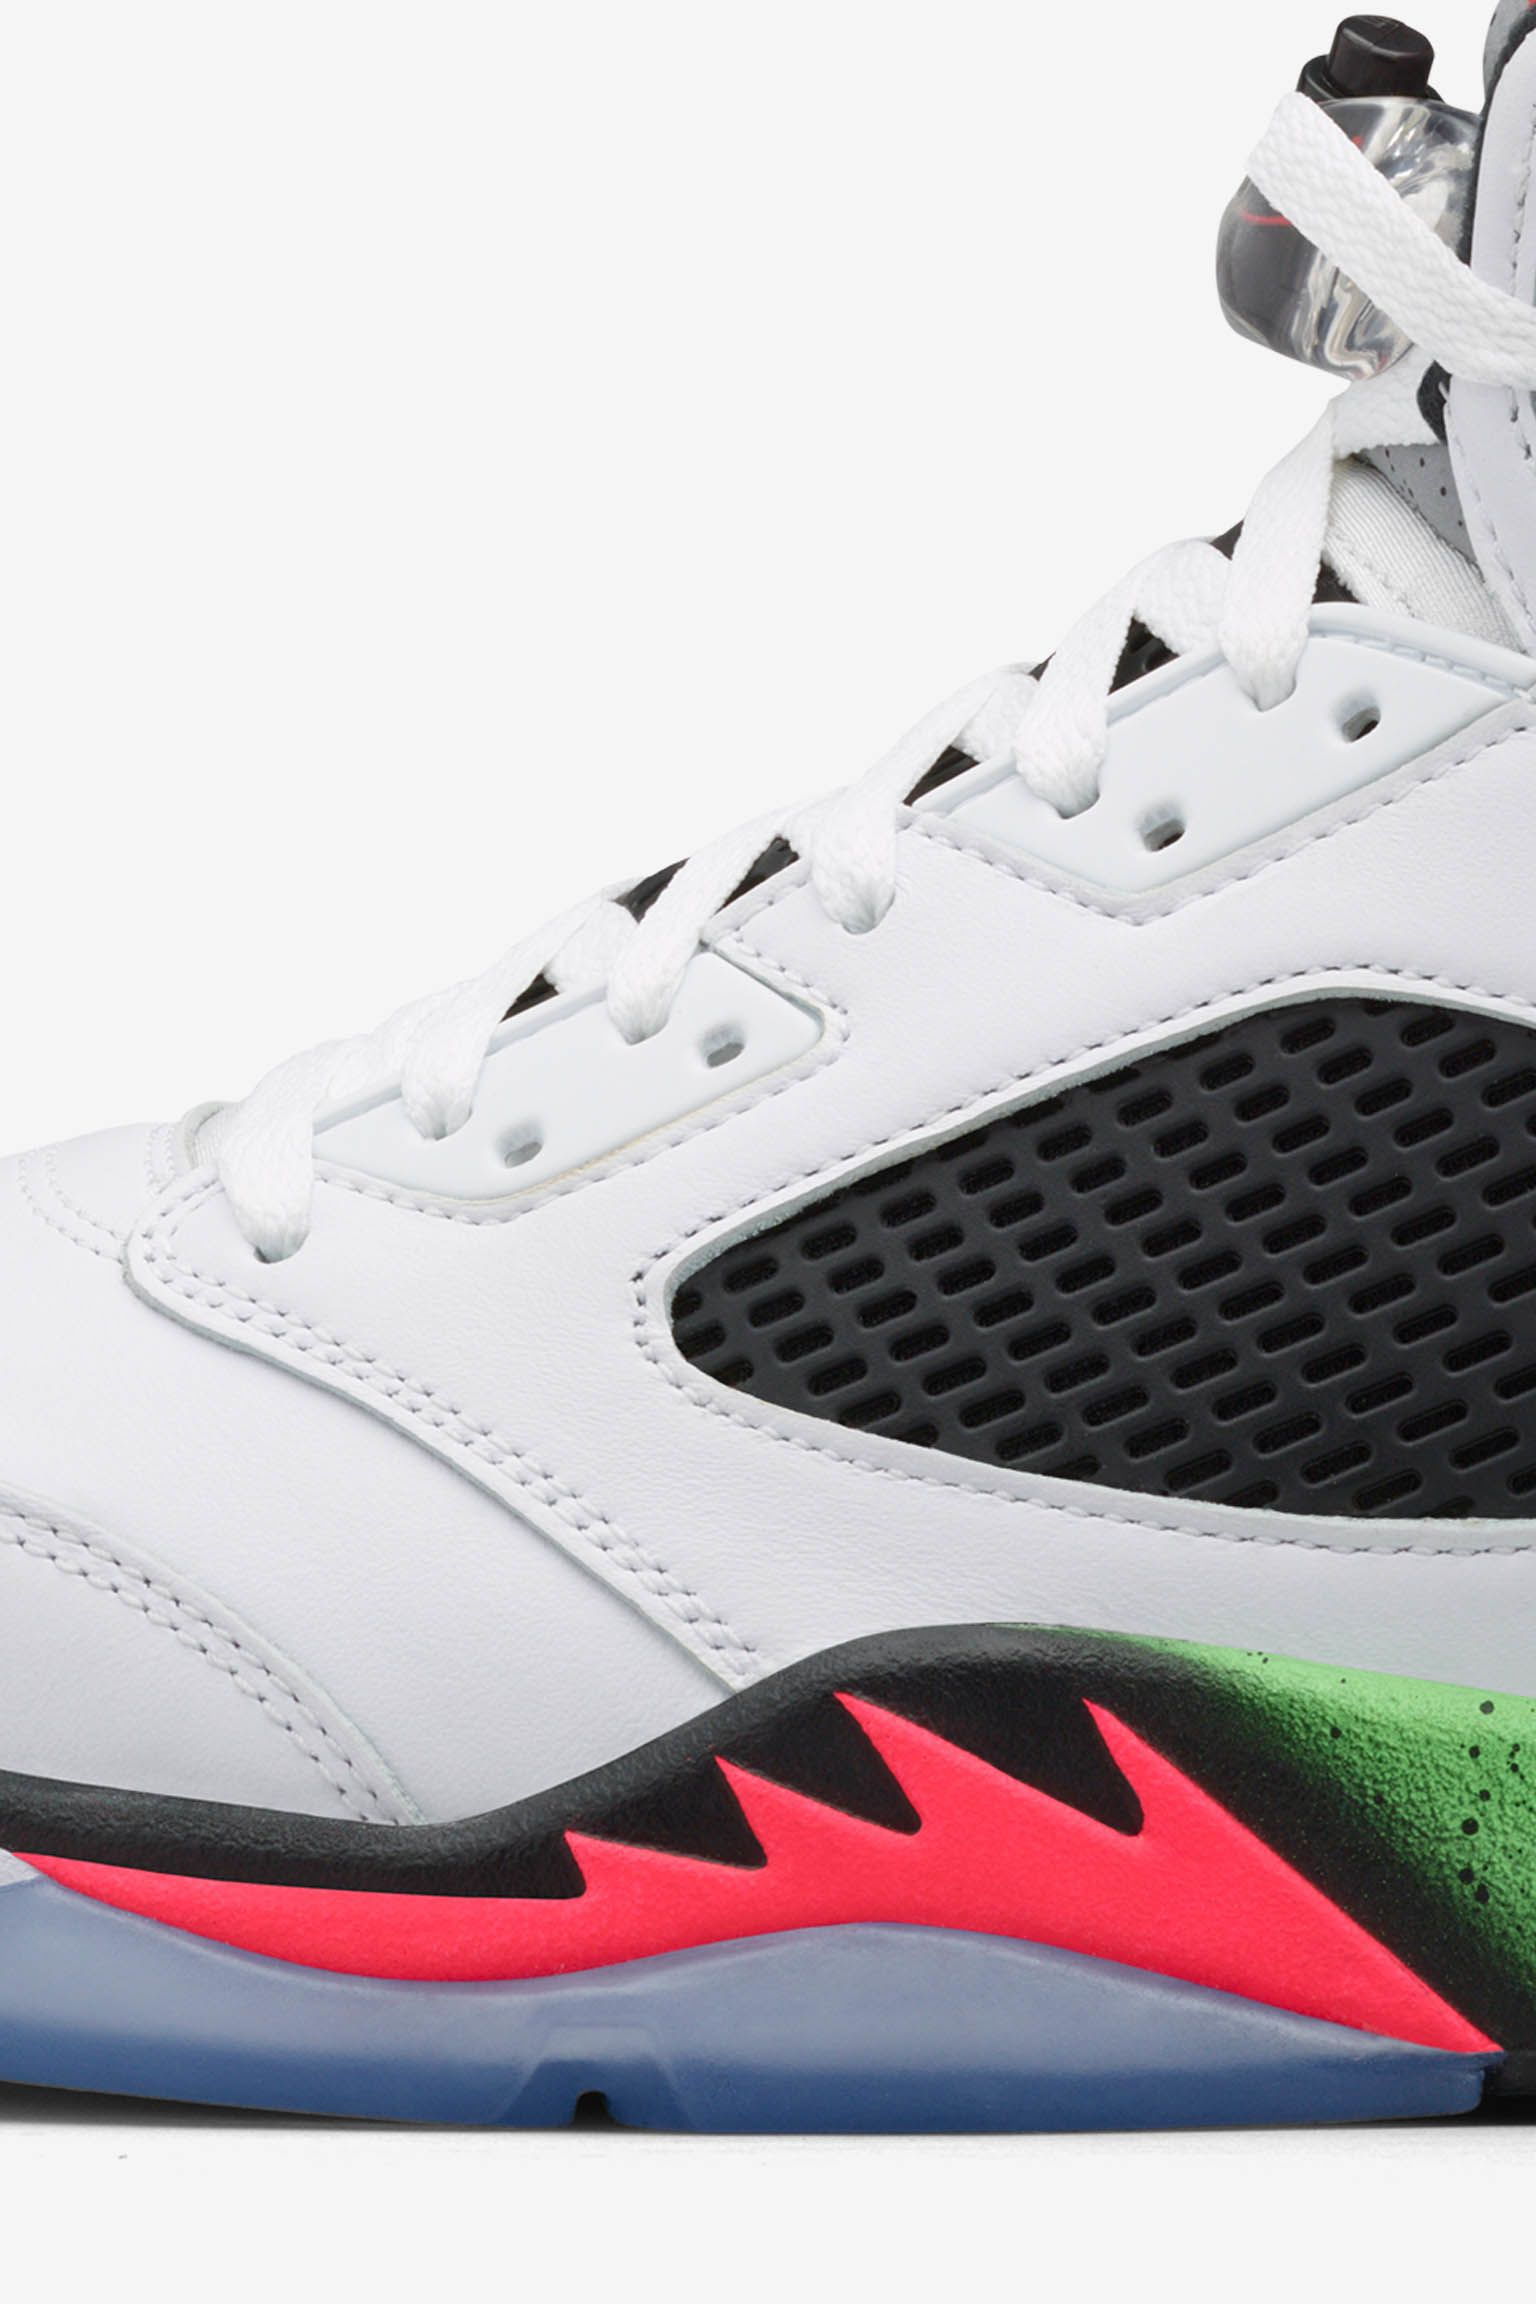 Air Jordan 5 Retro 'Poison Green' Release Date